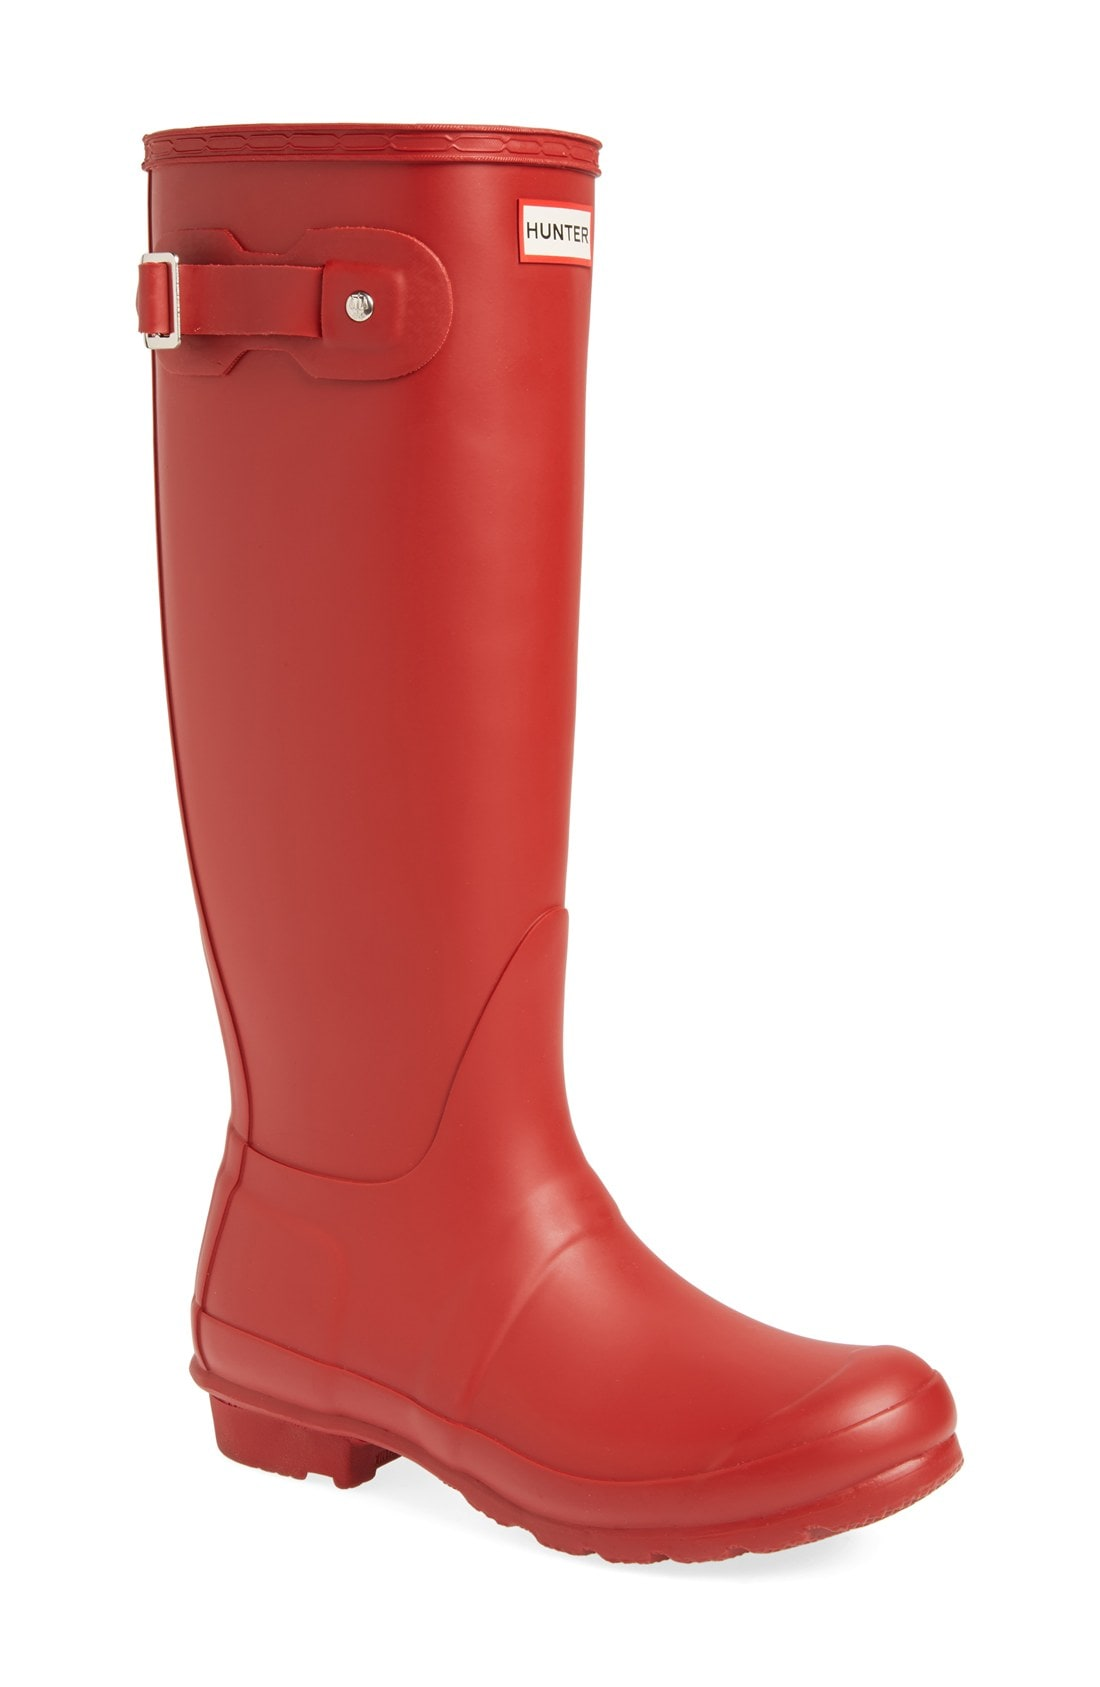 Women's Red Boots | Nordstrom